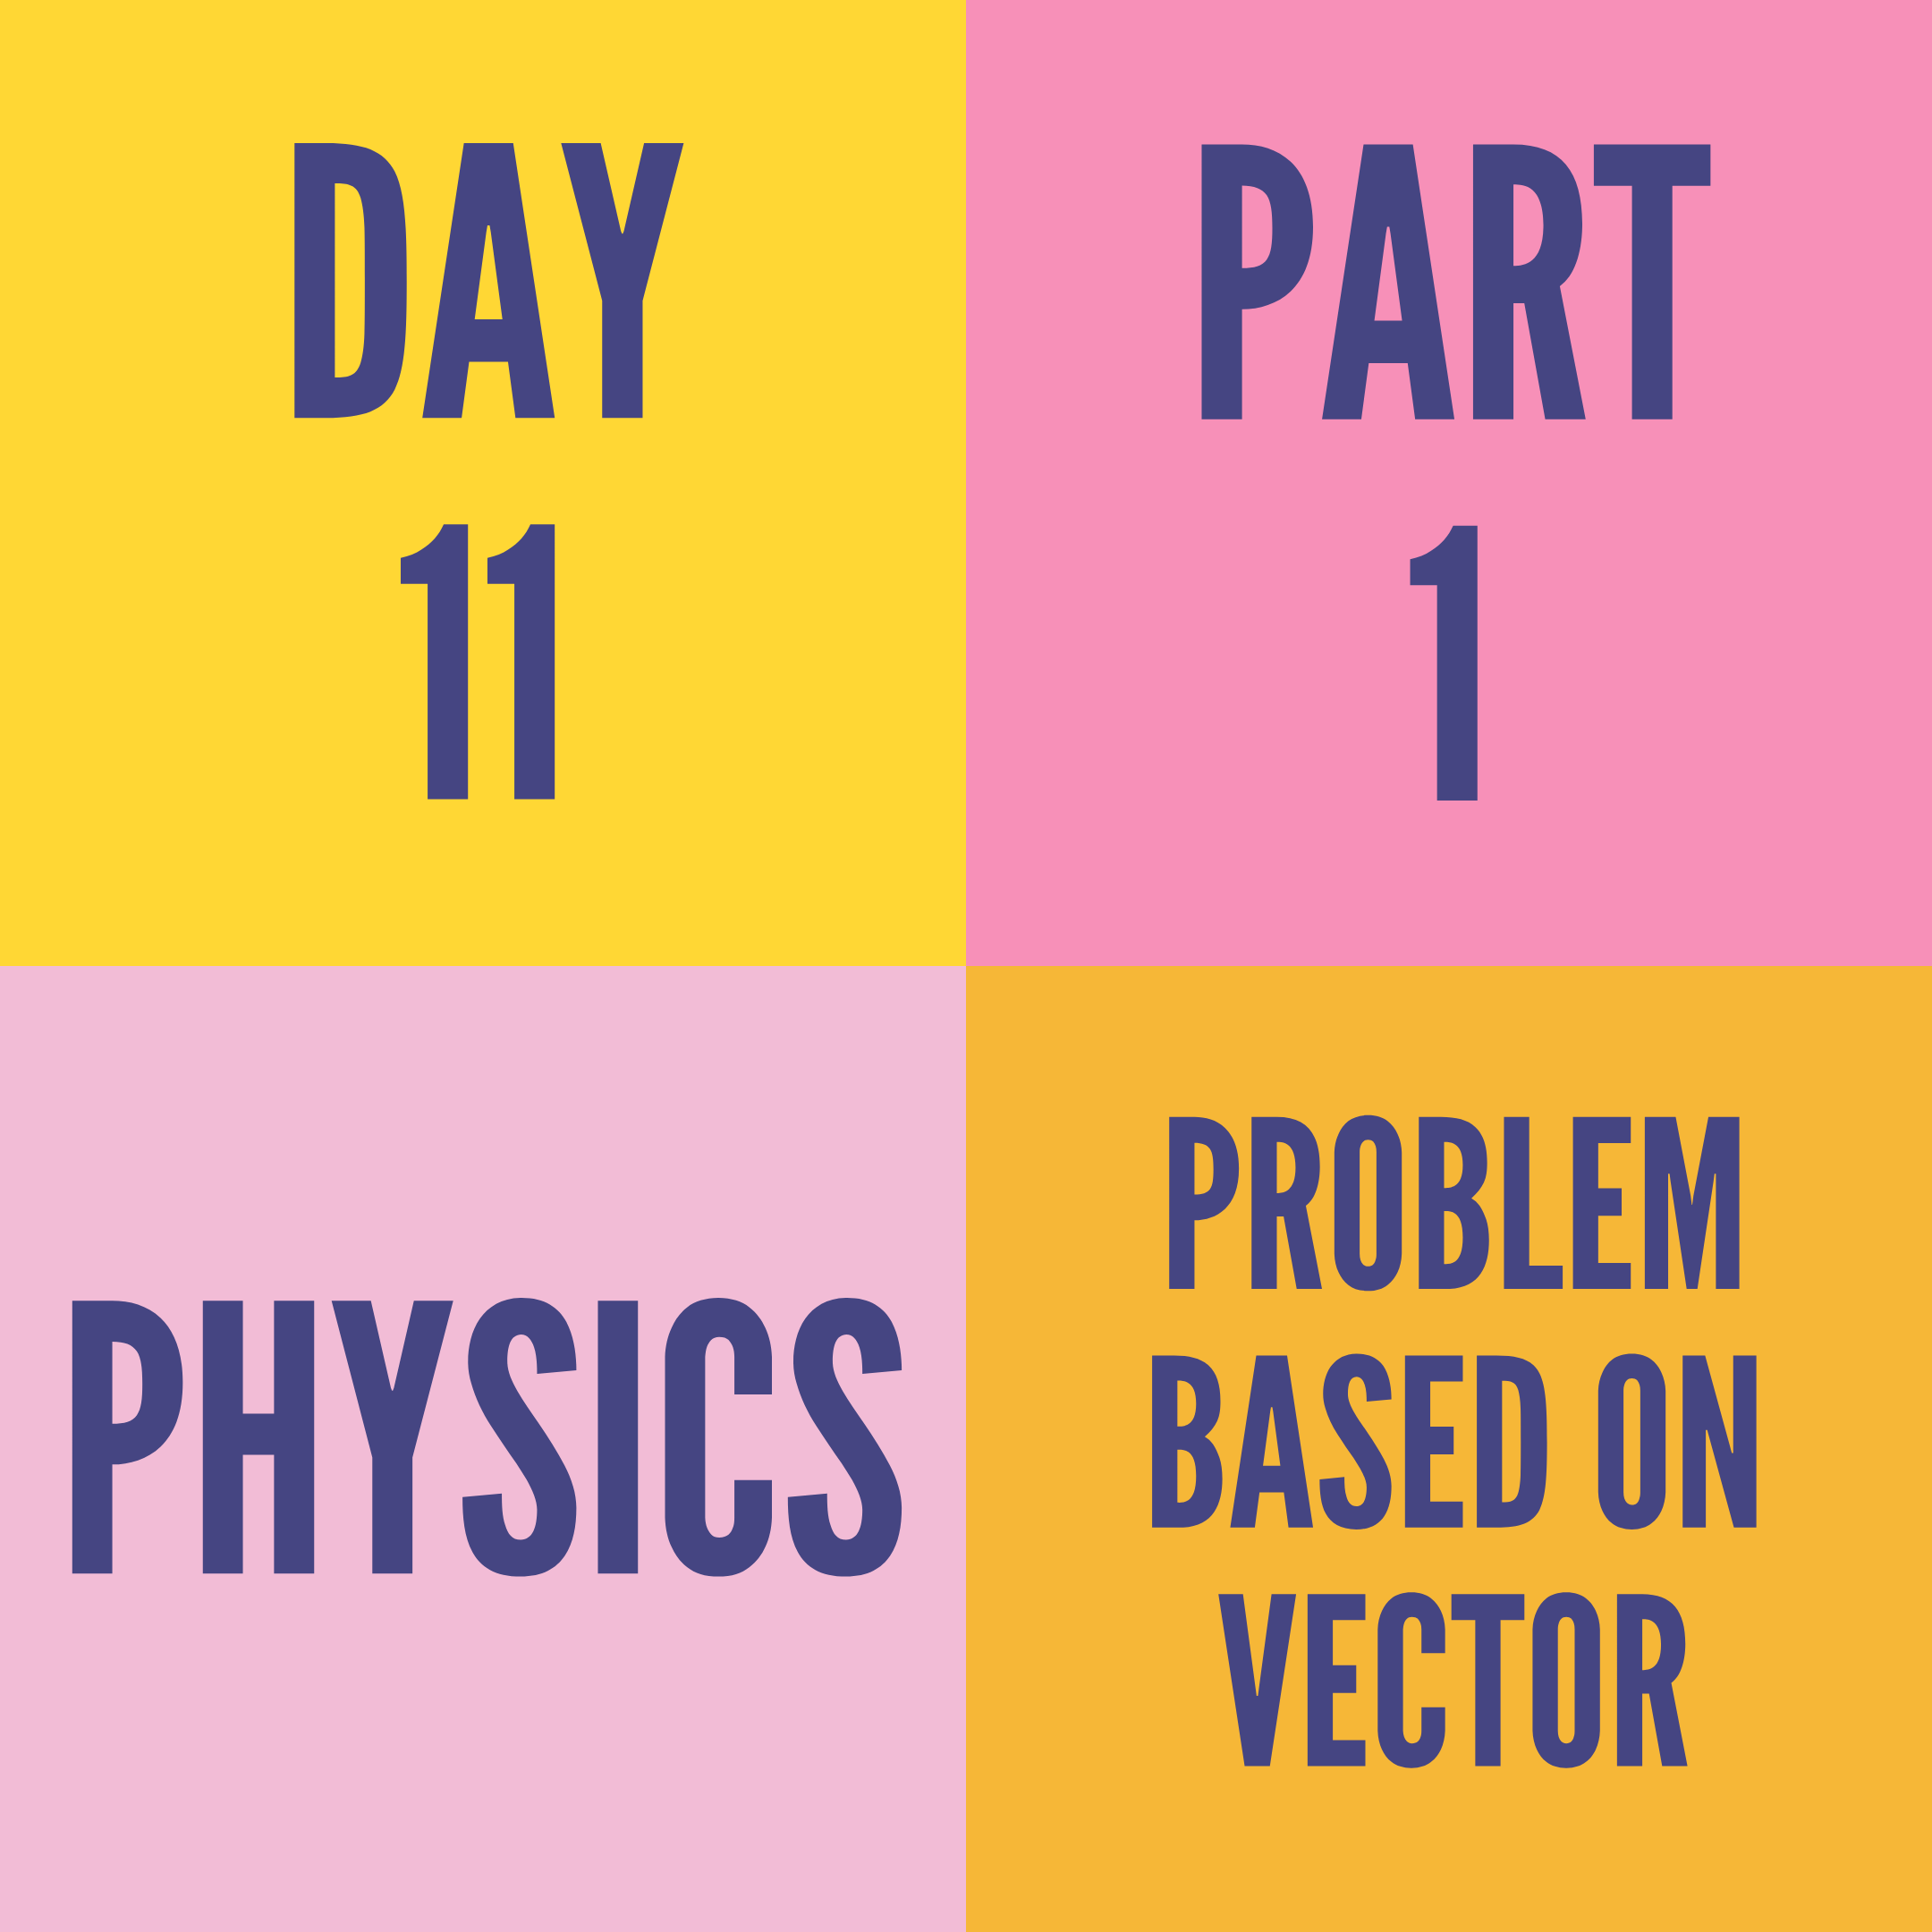 DAY-11 PART-1 PROBLEM BASED ON VECTOR